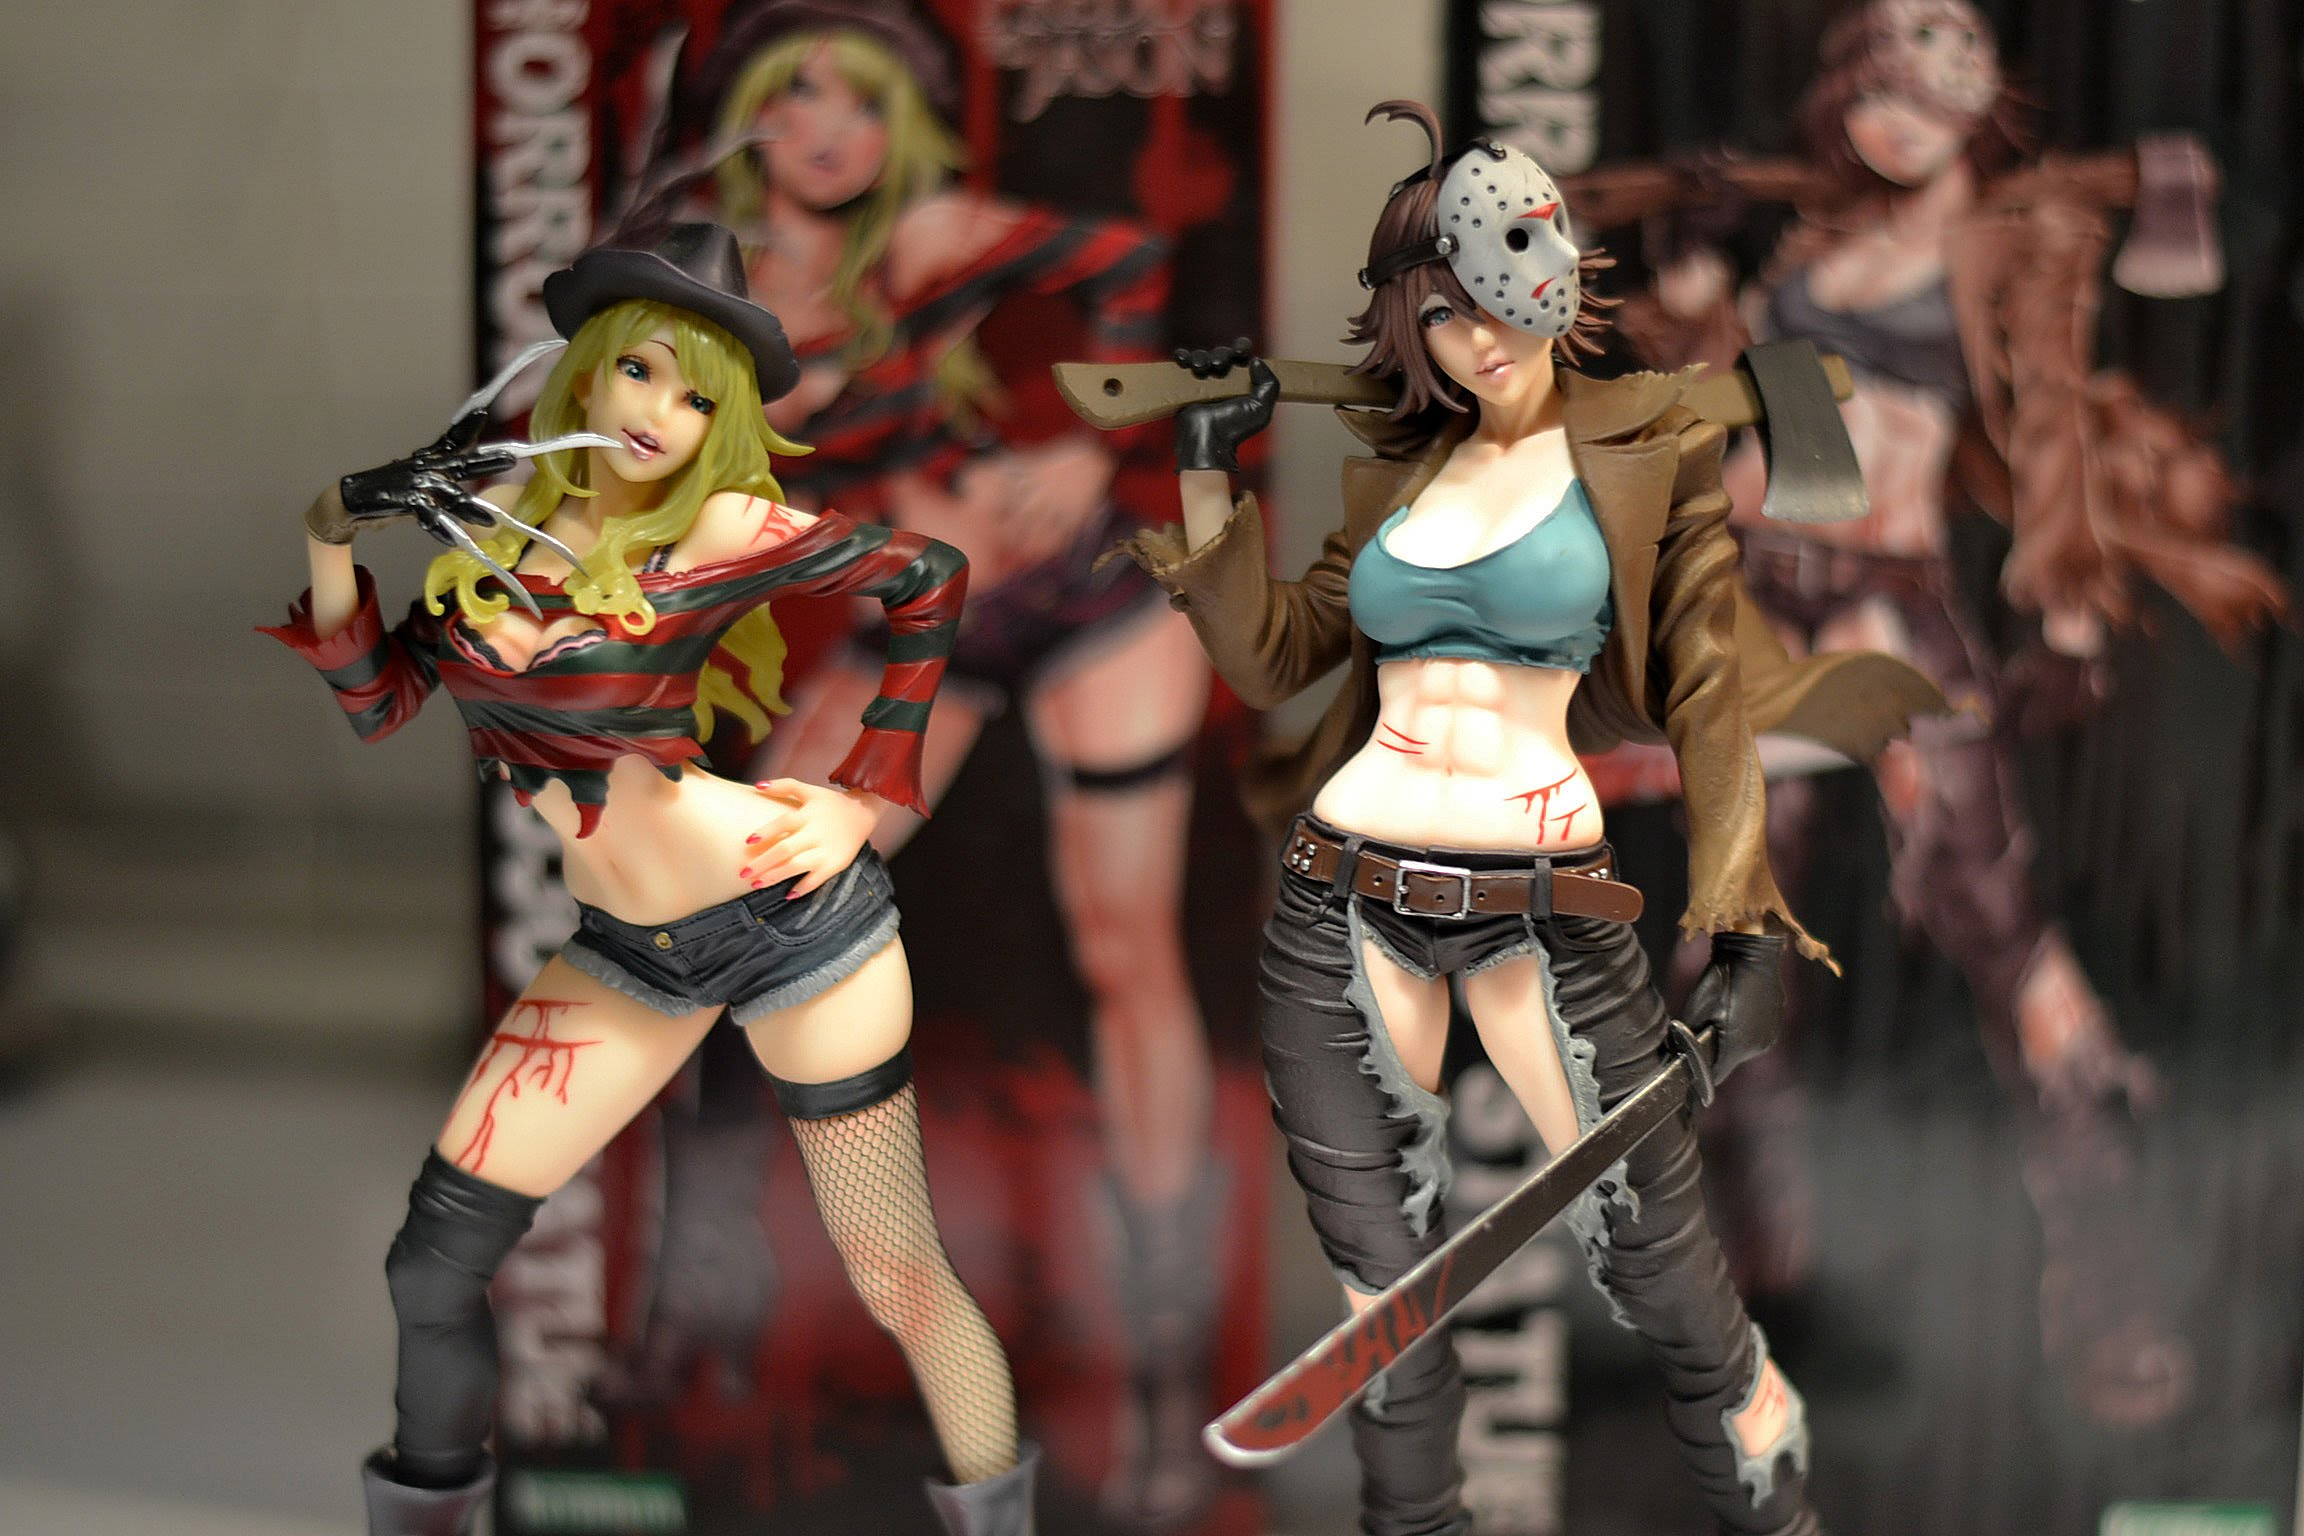 Freddy and Jason Gender Swapped Figures - Edward Coming Soon!